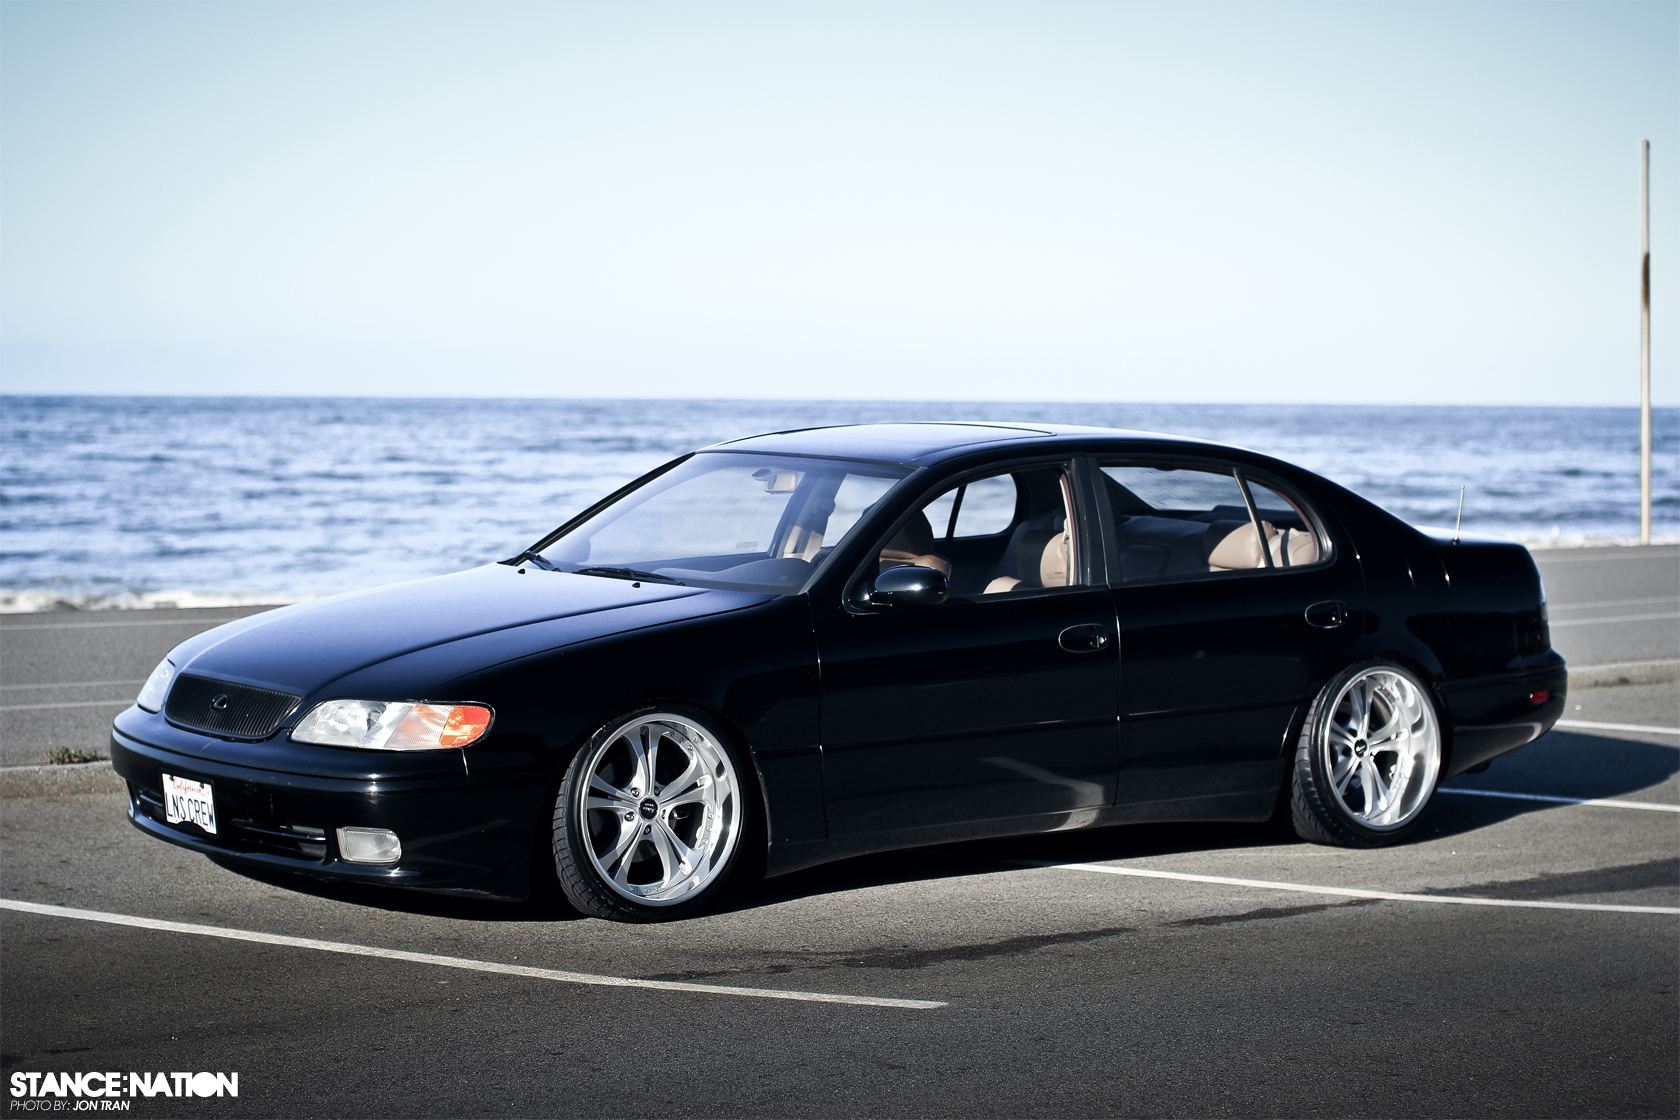 Low N Slow // Lexus SC300 & Lexus GS300 | StanceNation ...